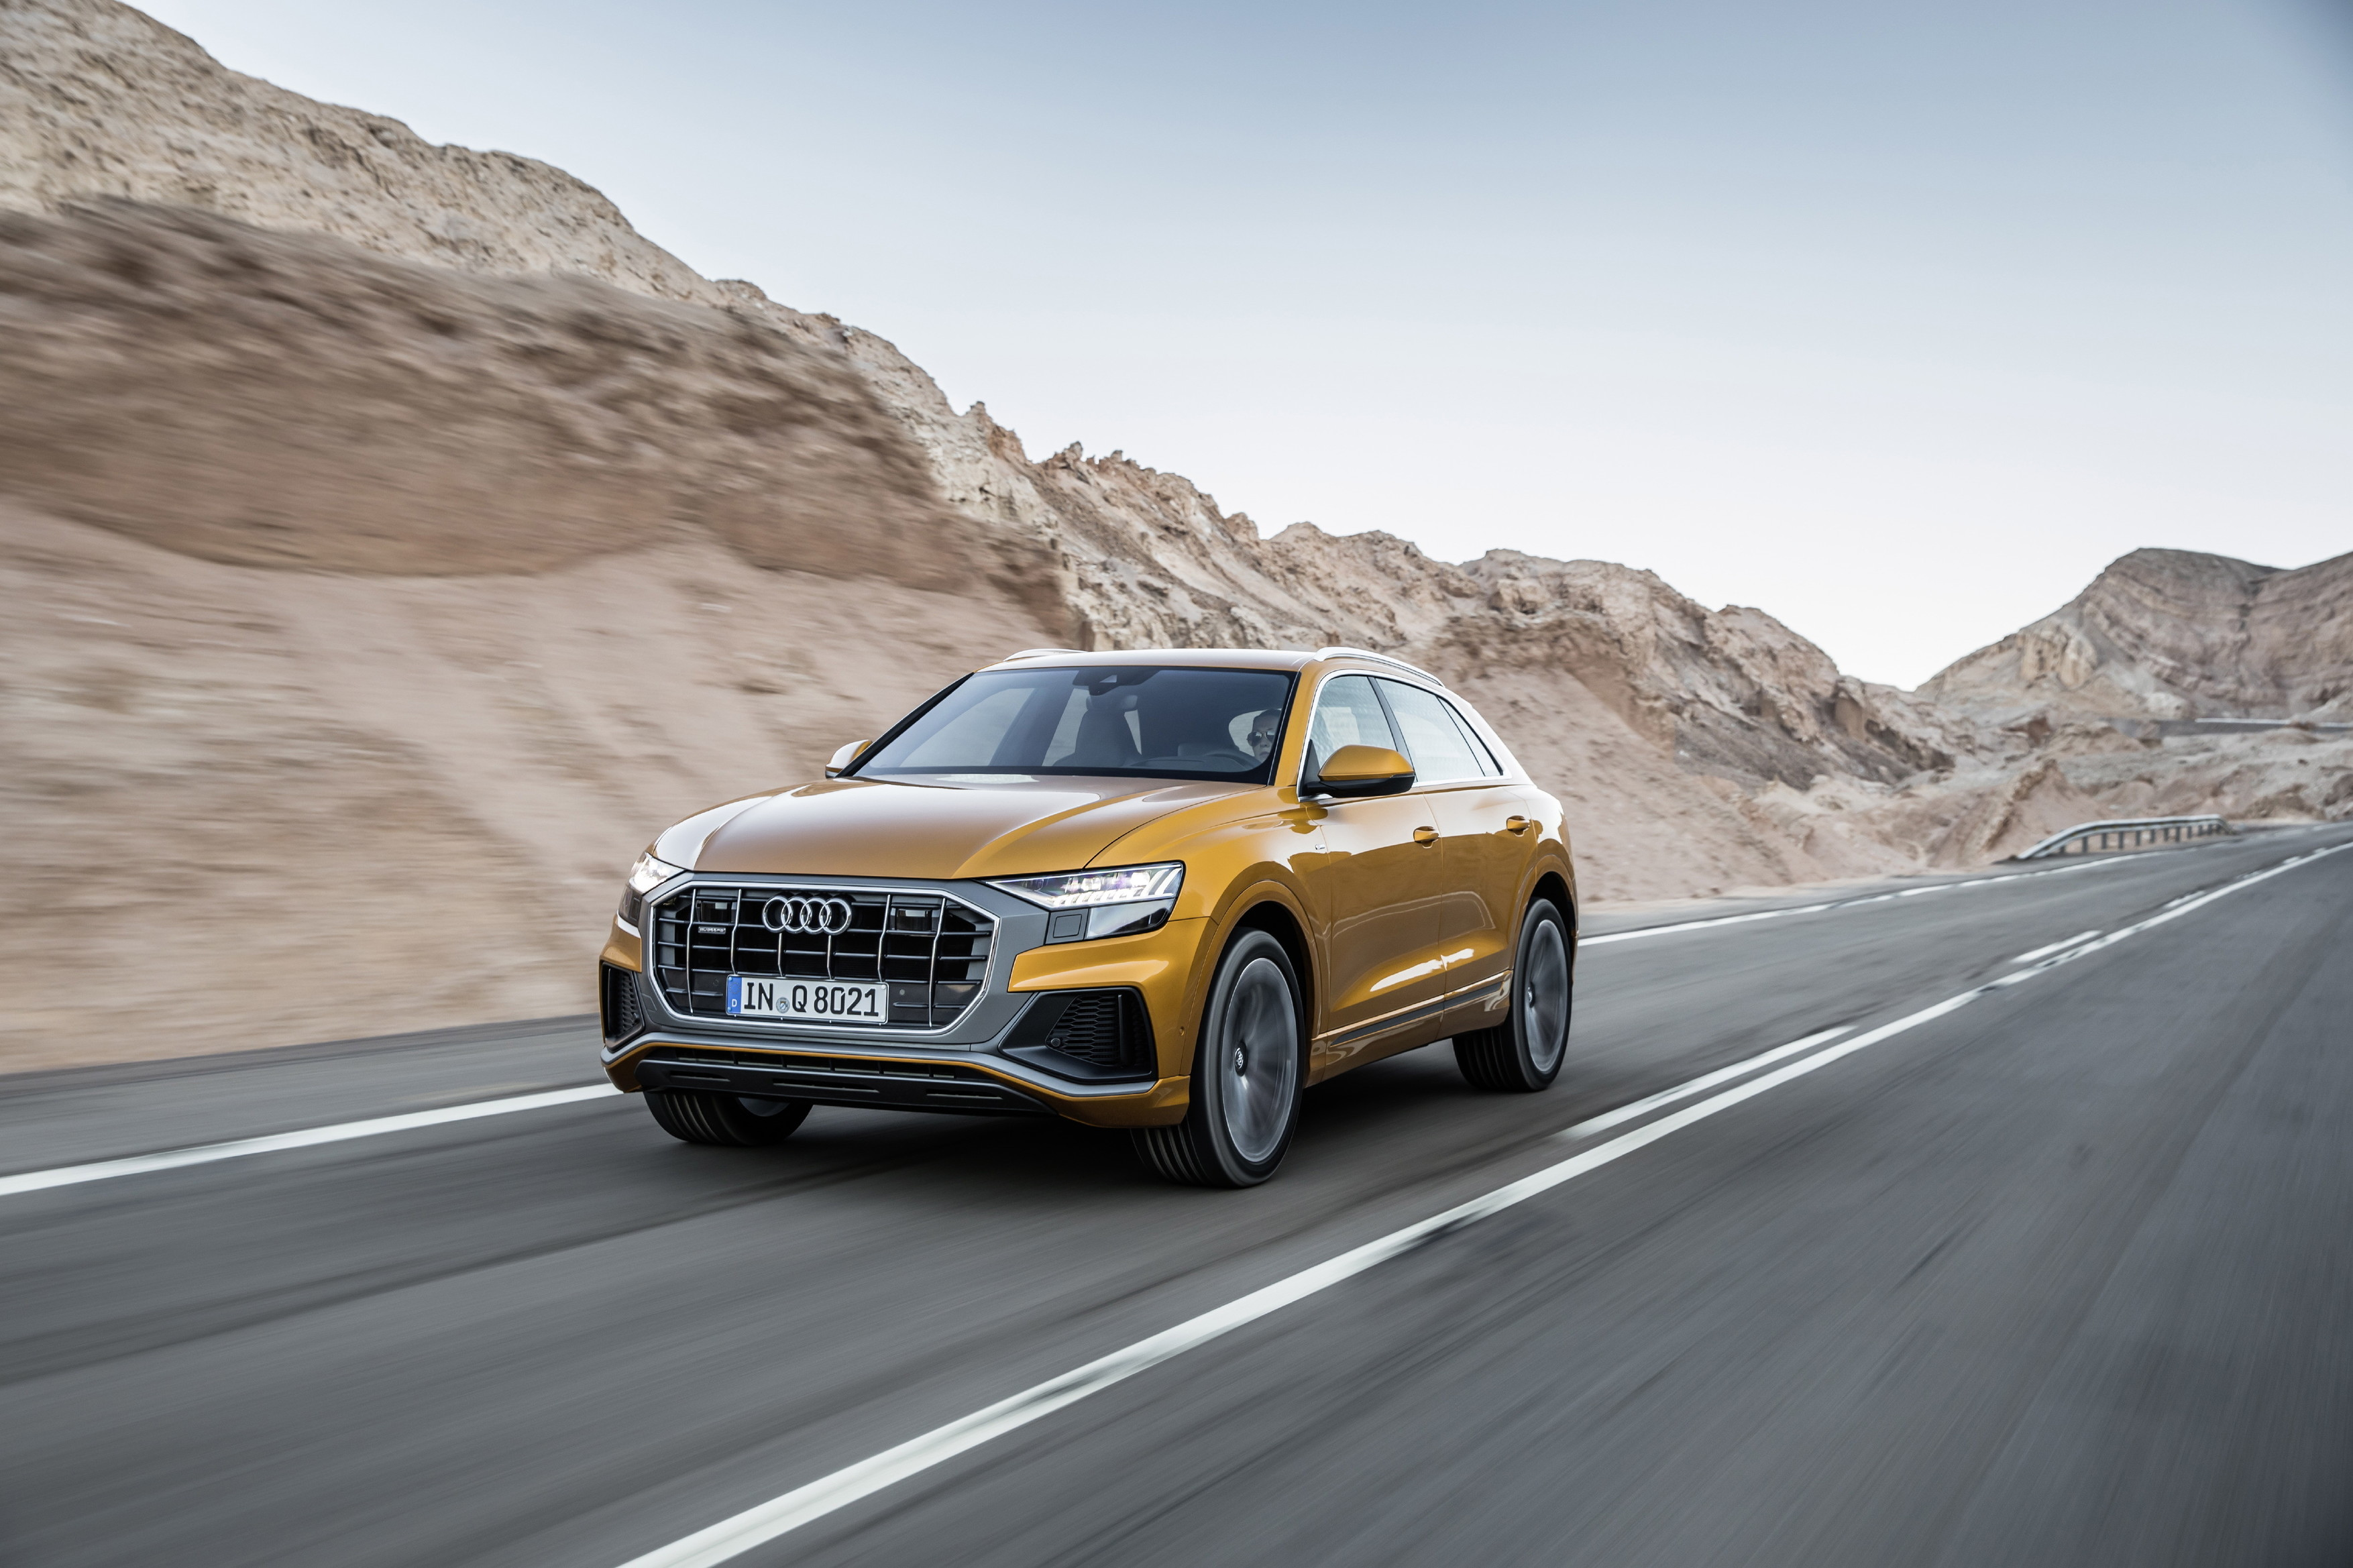 New Audi Q8 Now Available in the Middle East